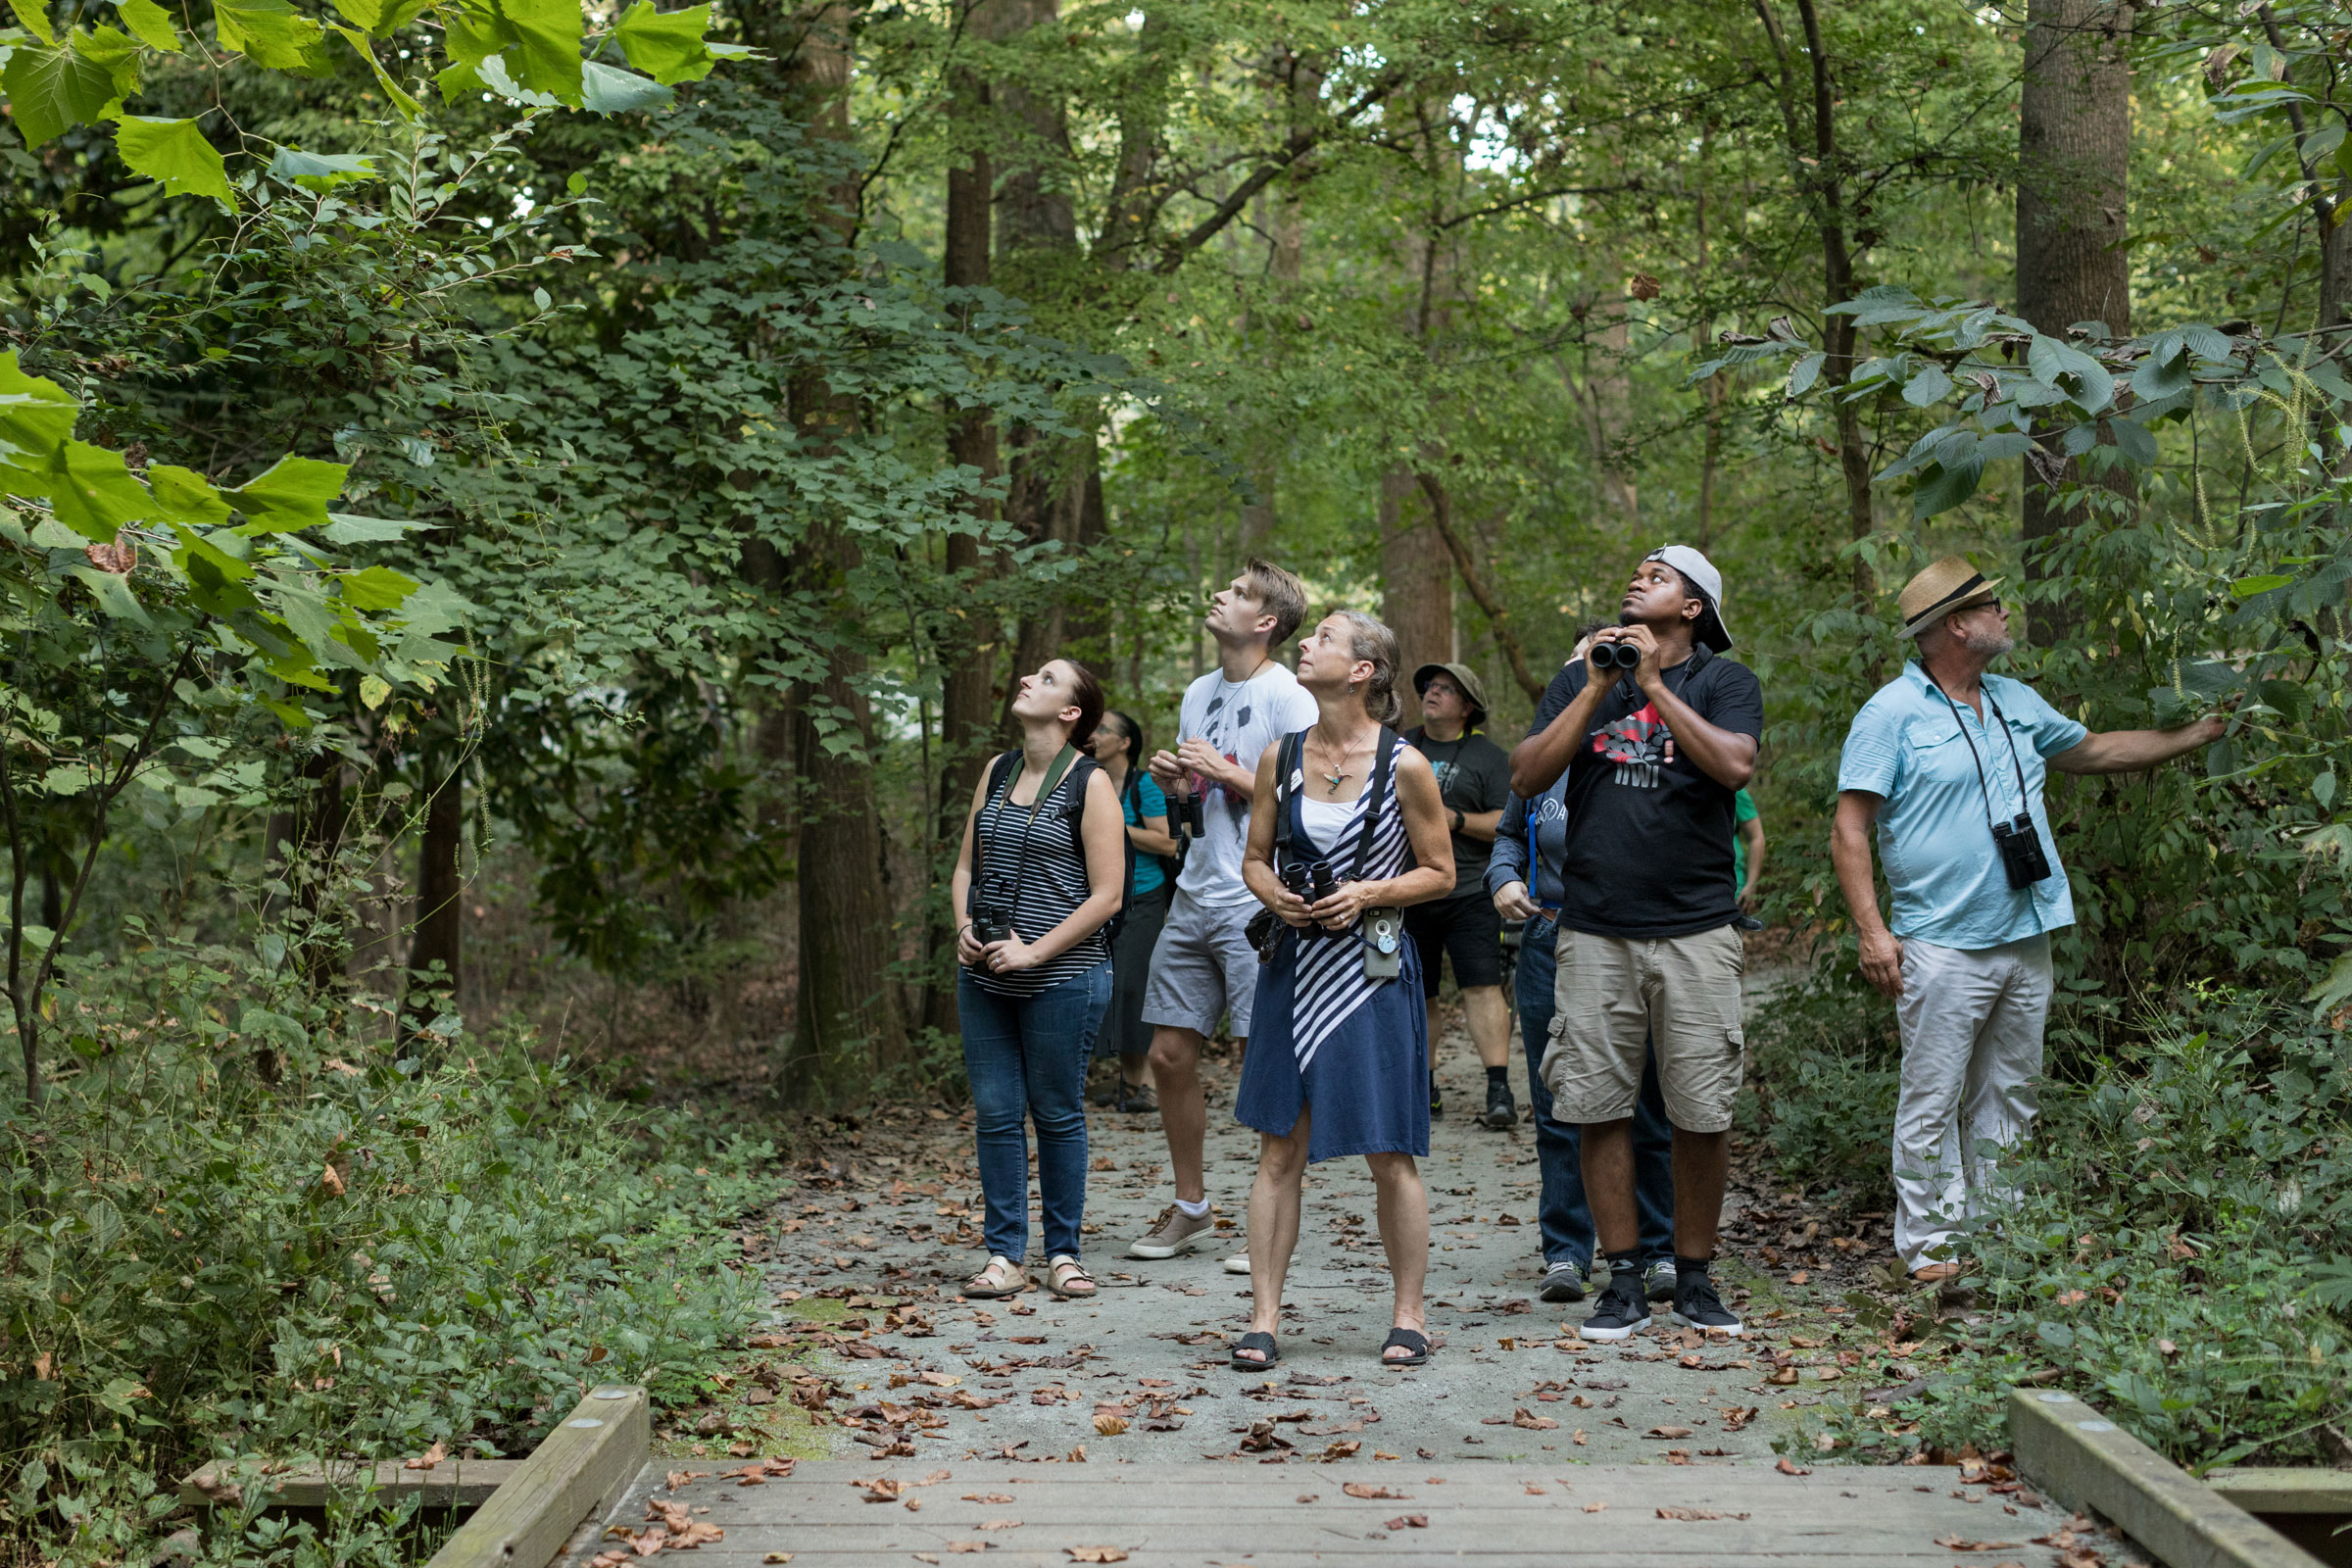 The author leads birders on an early evening walk to kick off Exhibitat. Sightings included a Cooper's Hawk and Red-eyed Vireo, but no Chimney Swifts. Jessie Parks